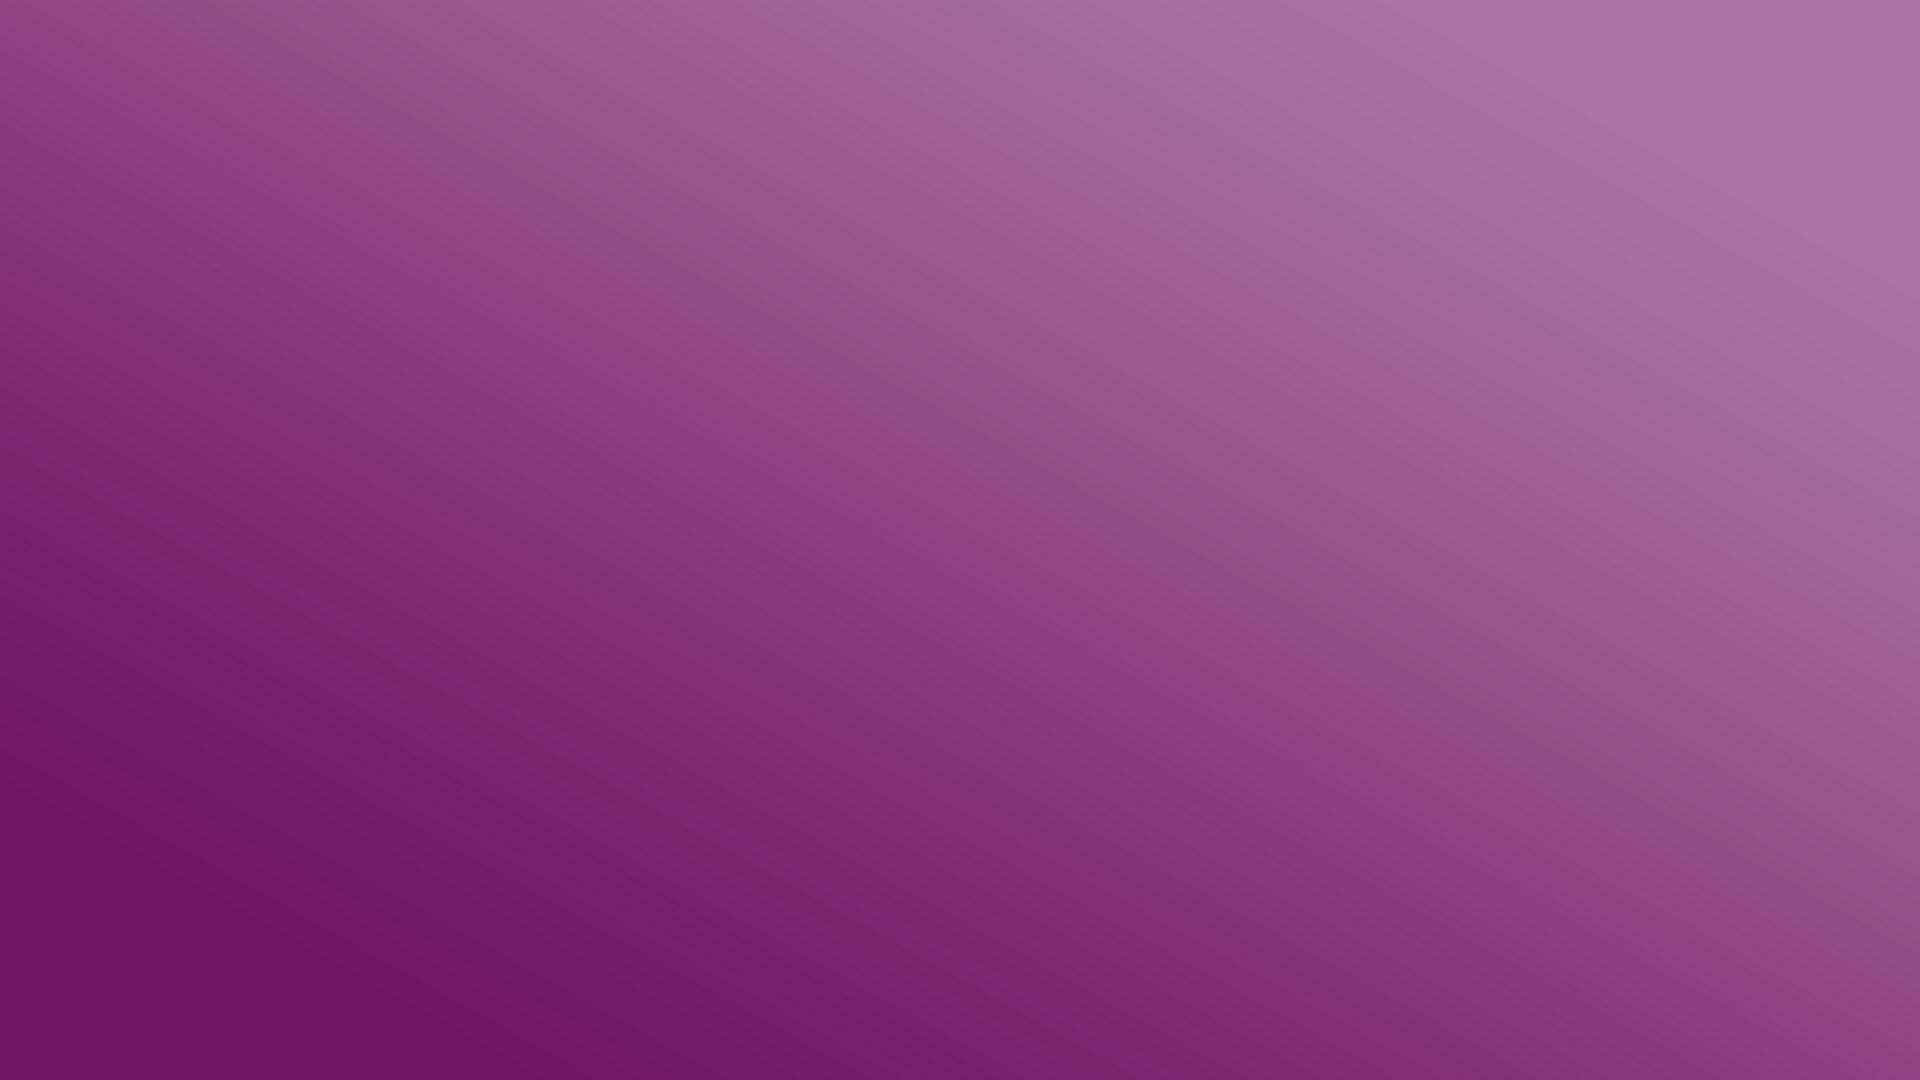 Gradient wallpaper for computer